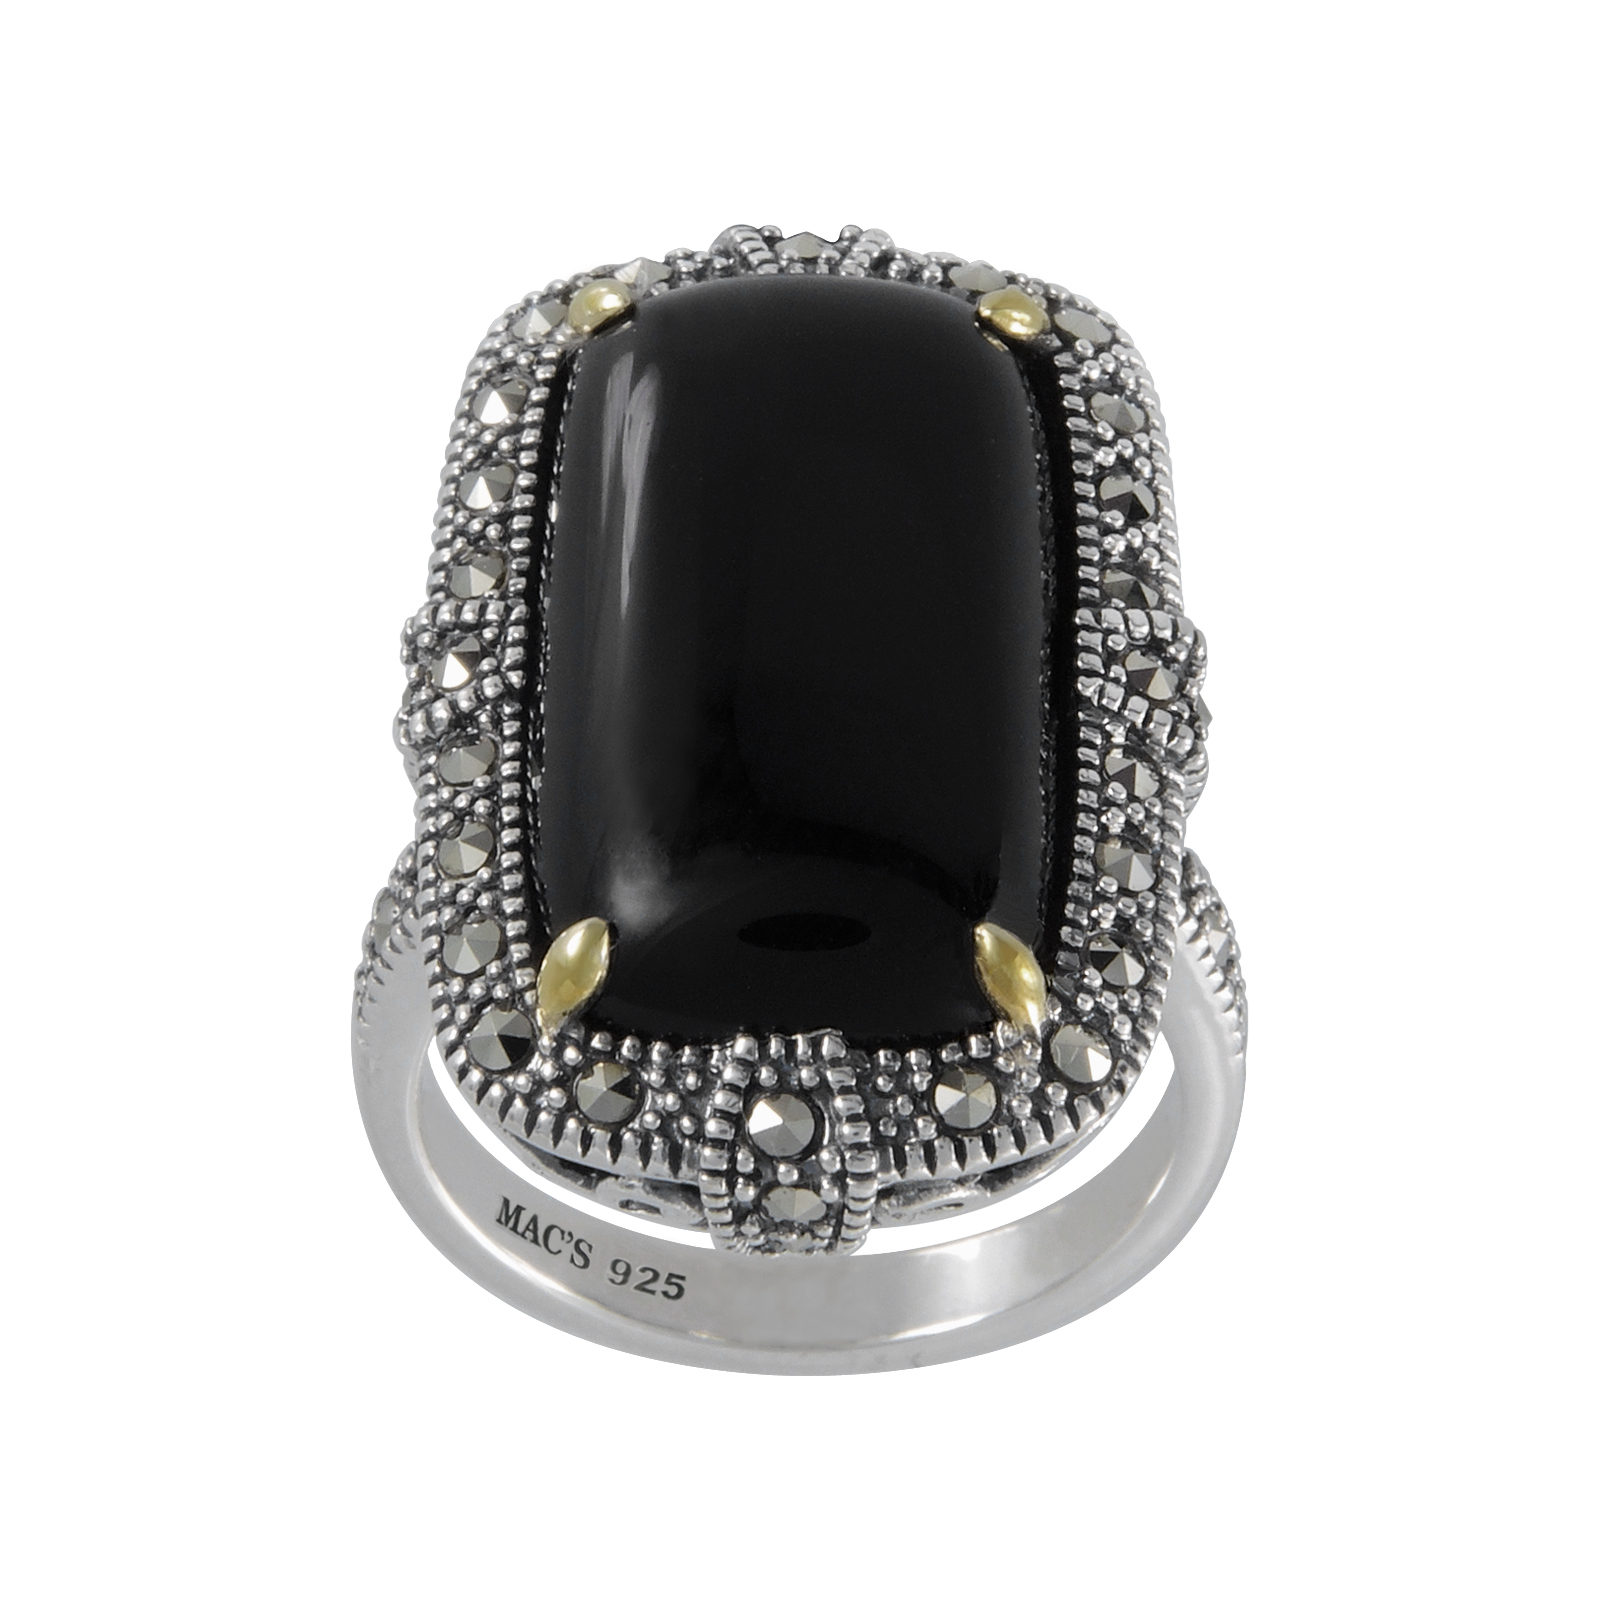 Mac's Cabochon Rectangular Cut Black Onyx & Marcasite accented with 14K Yellow Gold Prong Ring